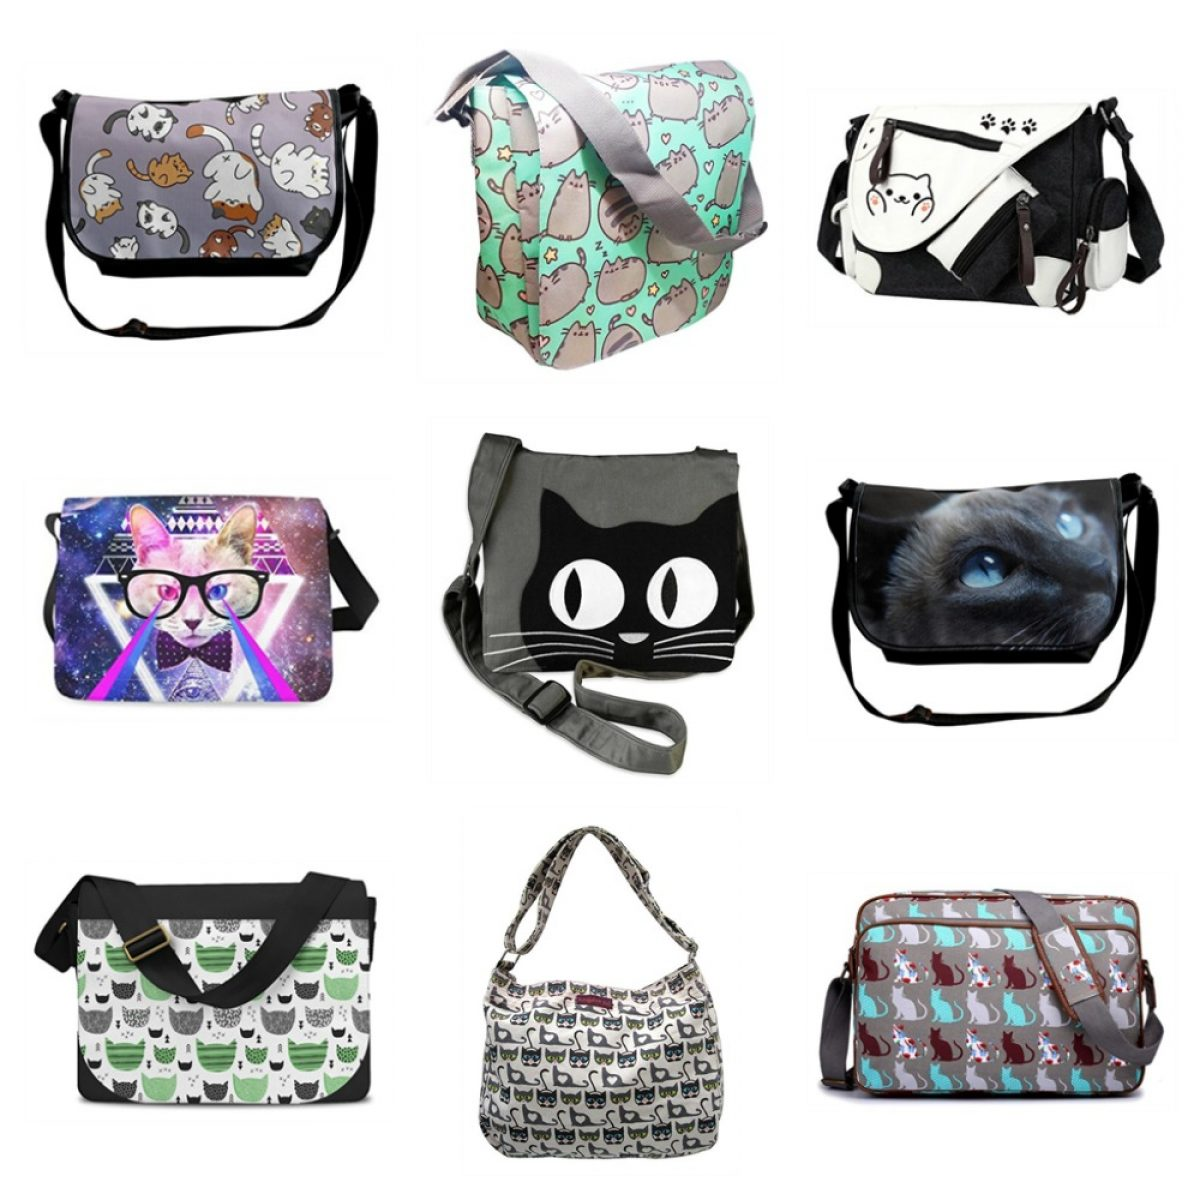 InterestPrint Lovely Cute Cats Casual Ladies Cross Body Hobo Shoulder Bag Travel Purse